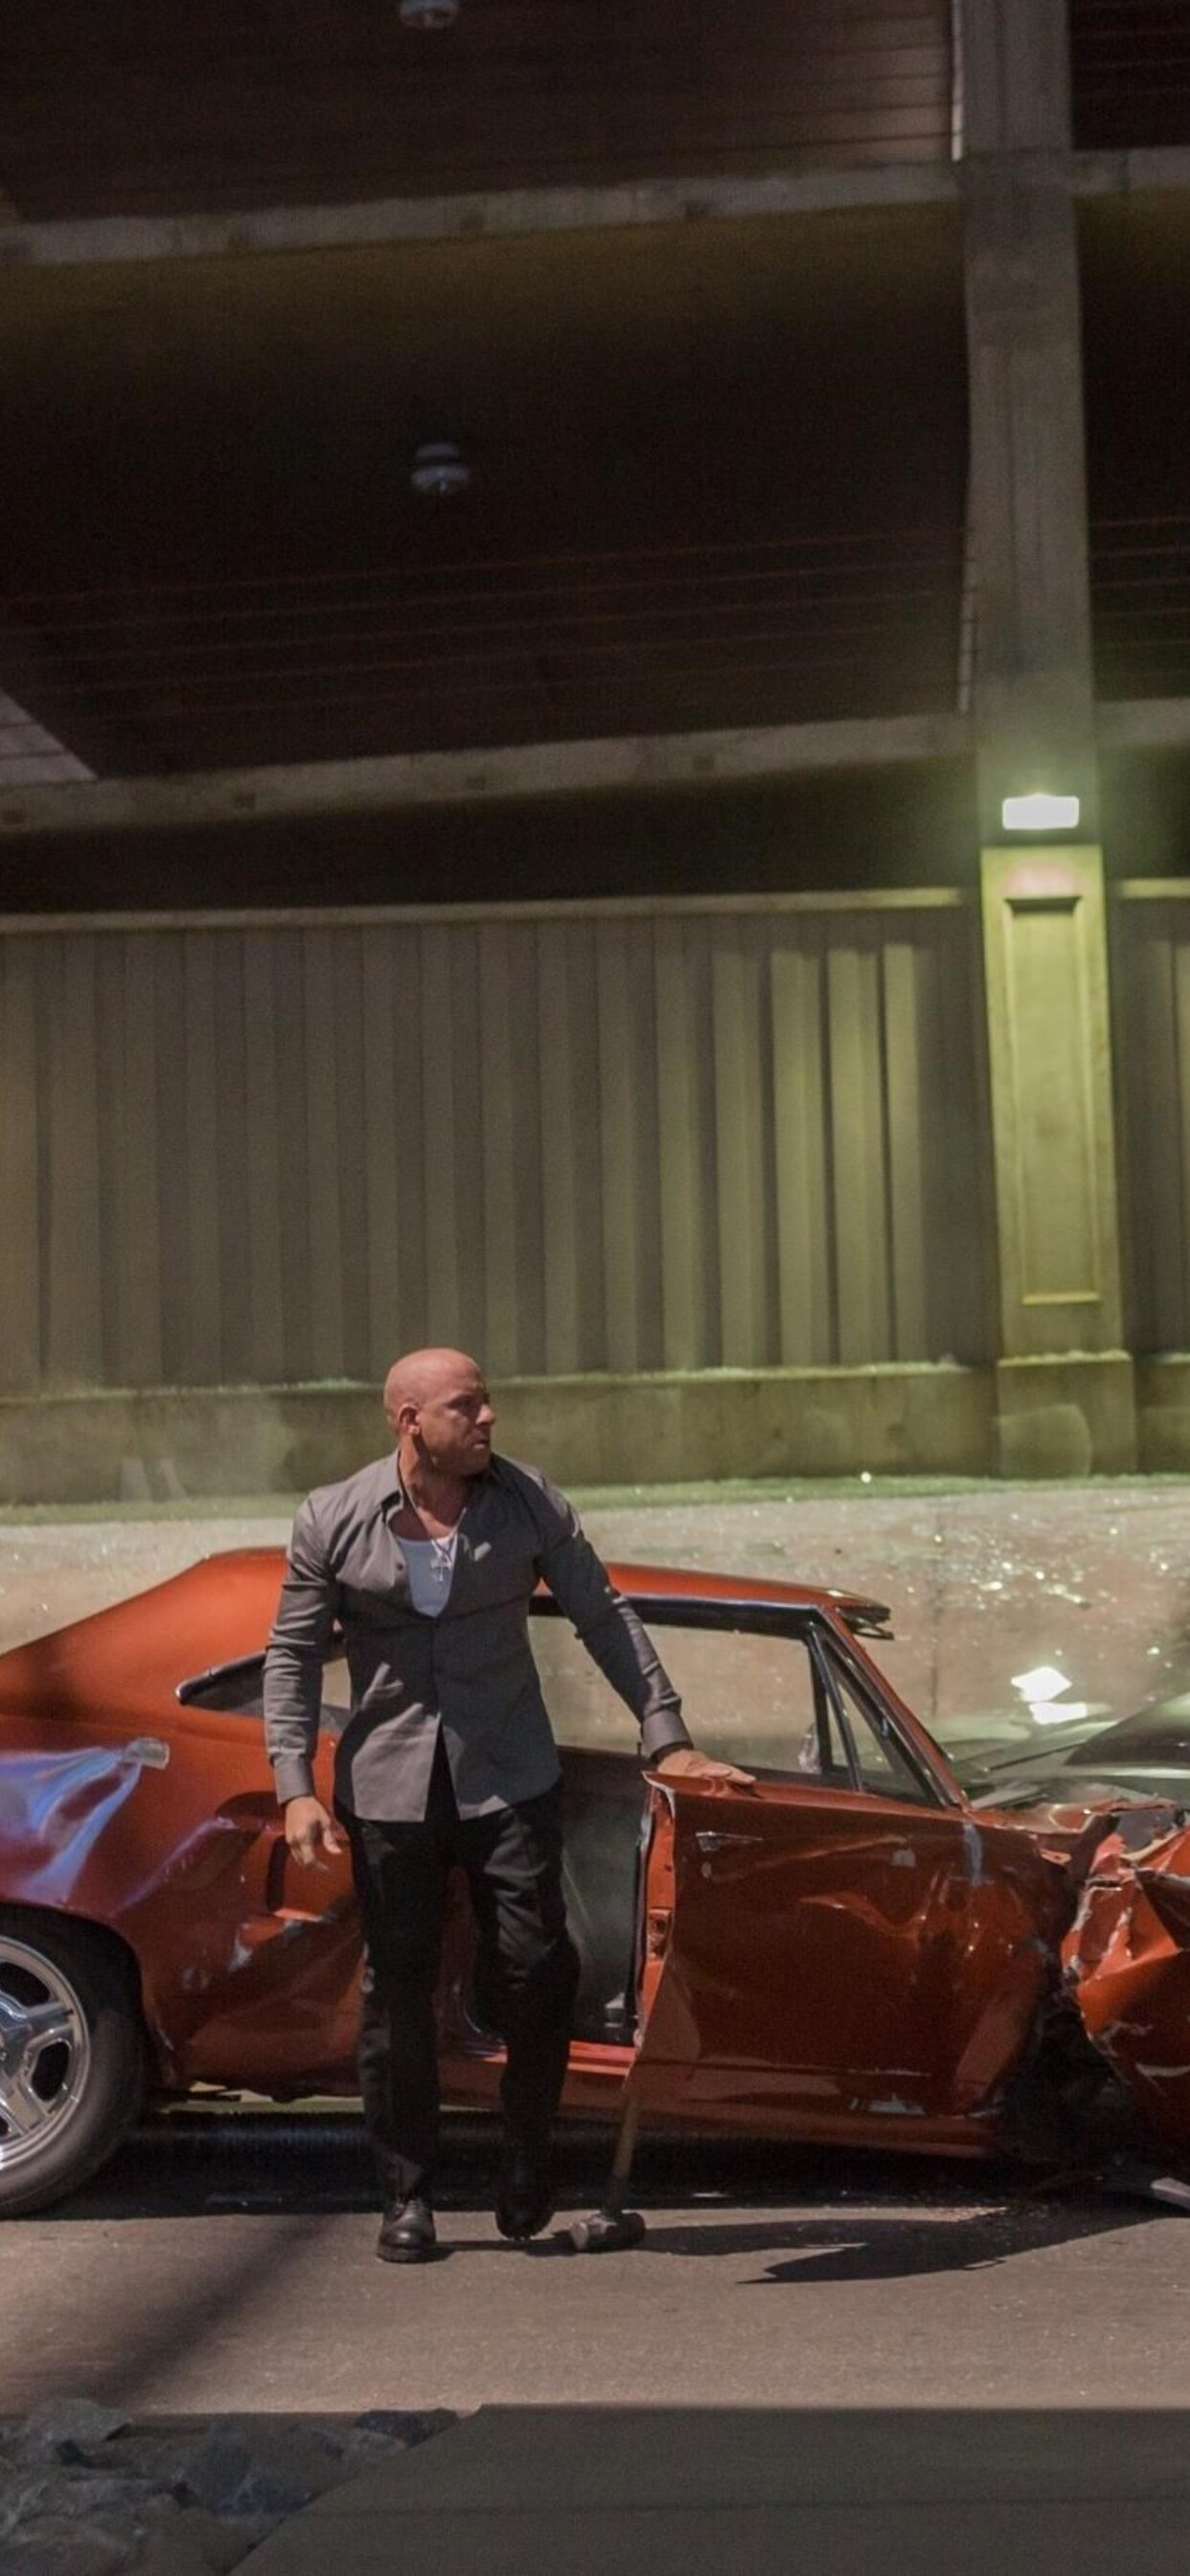 1242x2688 Fast And Furious Movie Scene Iphone Xs Max Hd 4k